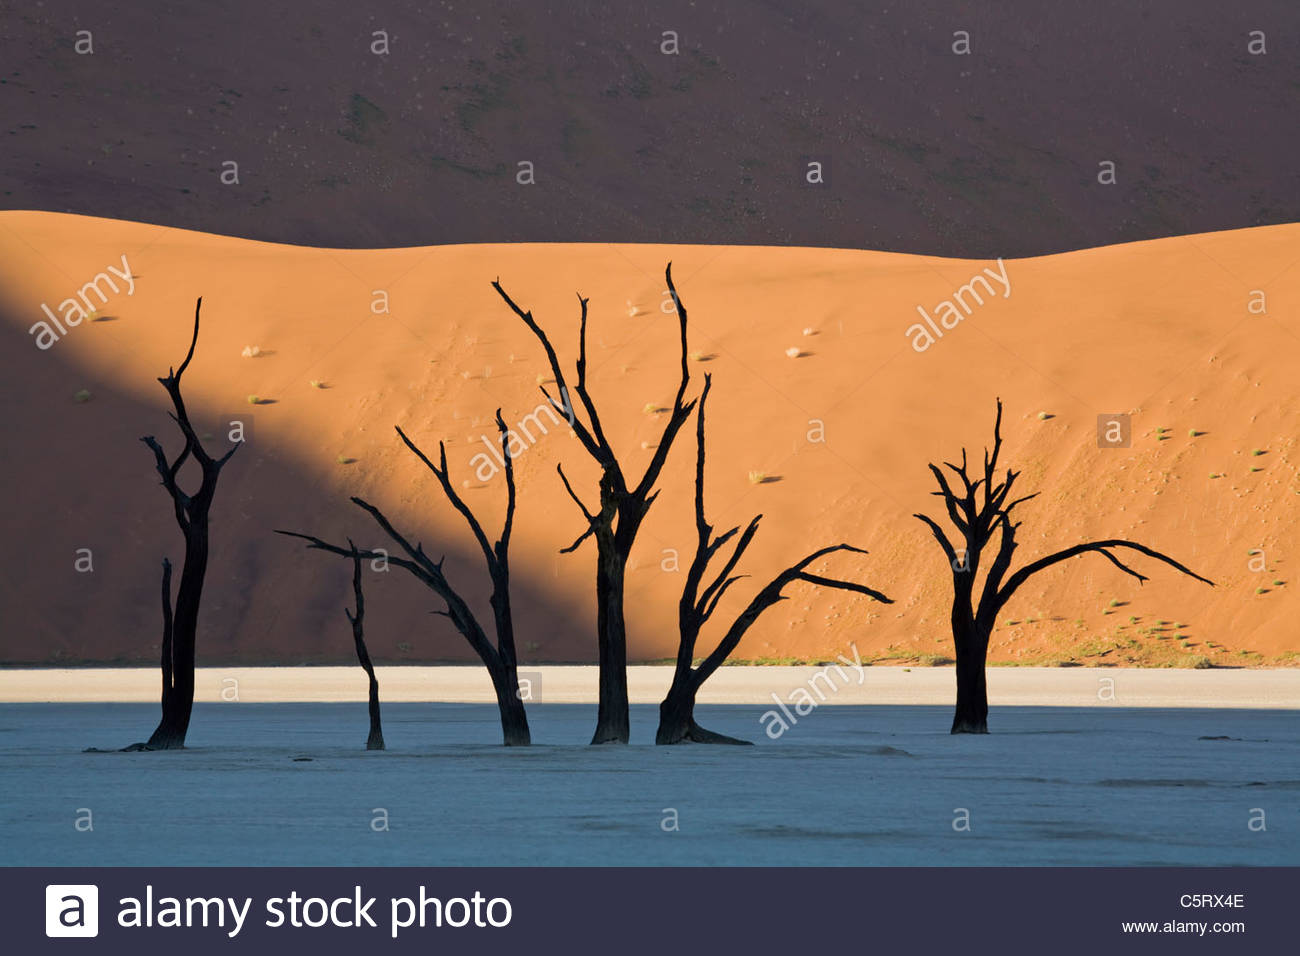 Africa, Namibia, Deadvlei, Dead trees - Stock Image